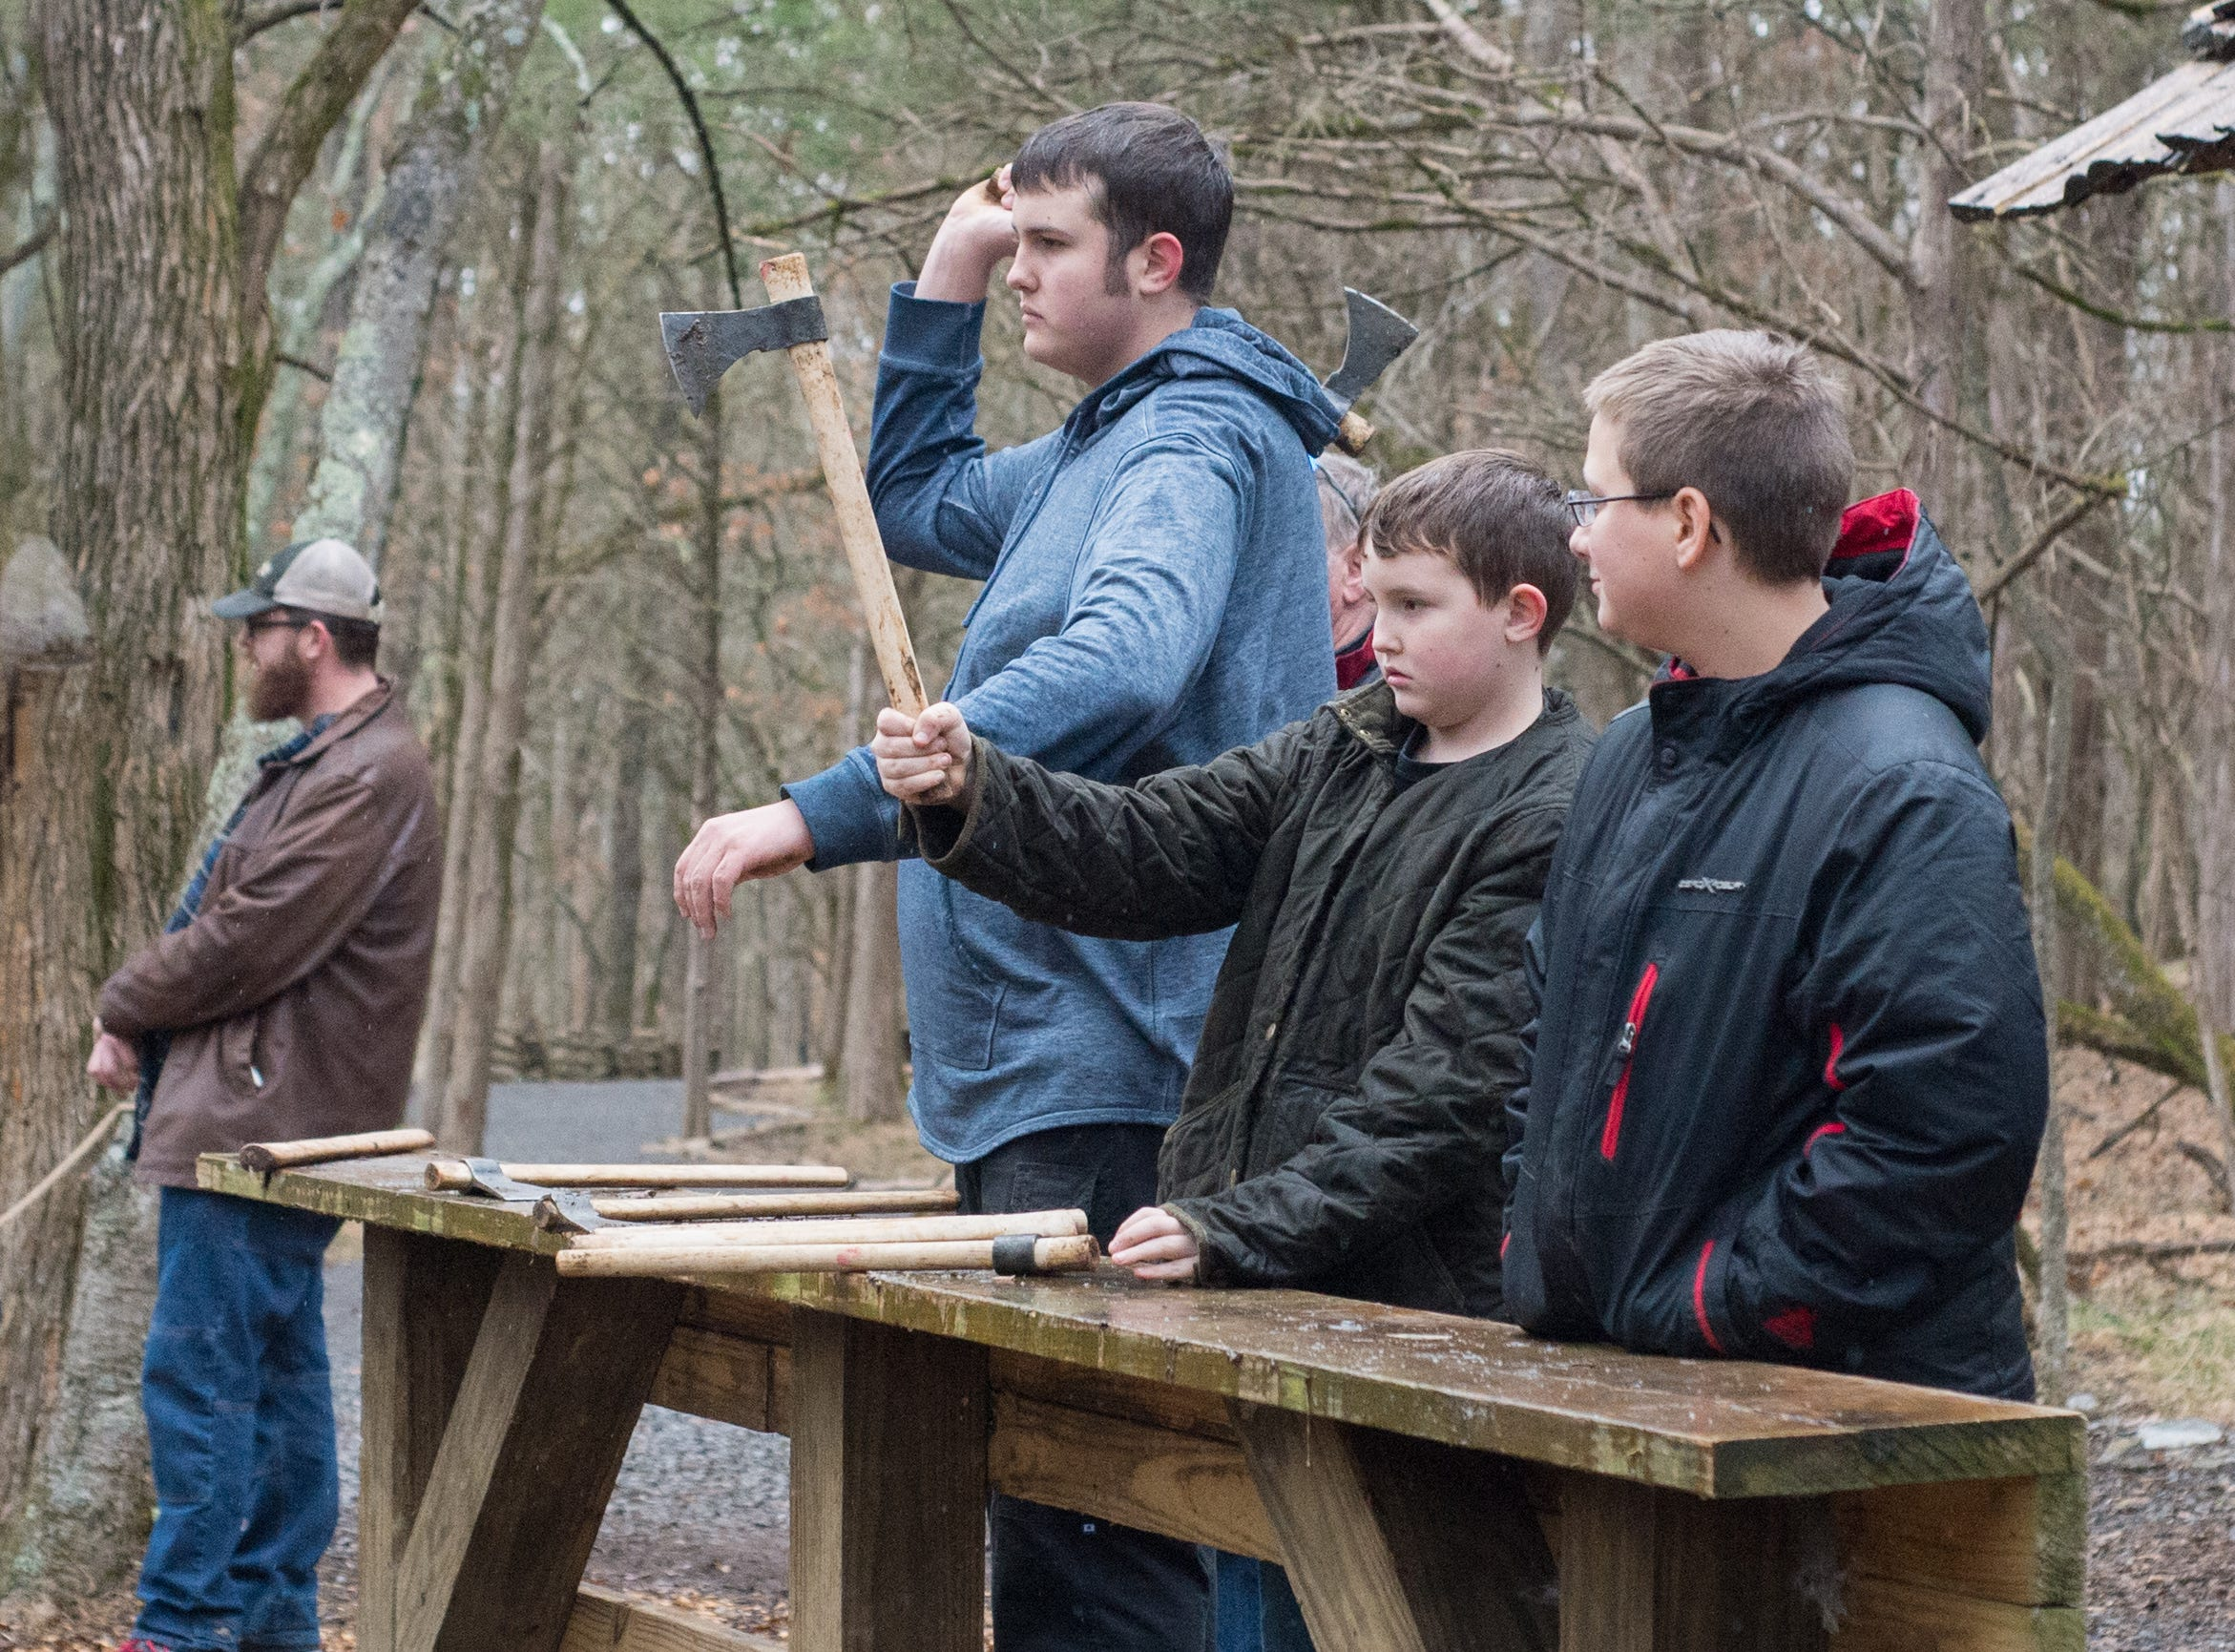 The rain did not stop attendees from participating in a Tomahawk Throwing for Beginners event hosted by Middle Tennessee History Coalition at Bledsoe Creek State Park on Saturday, Jan. 12.